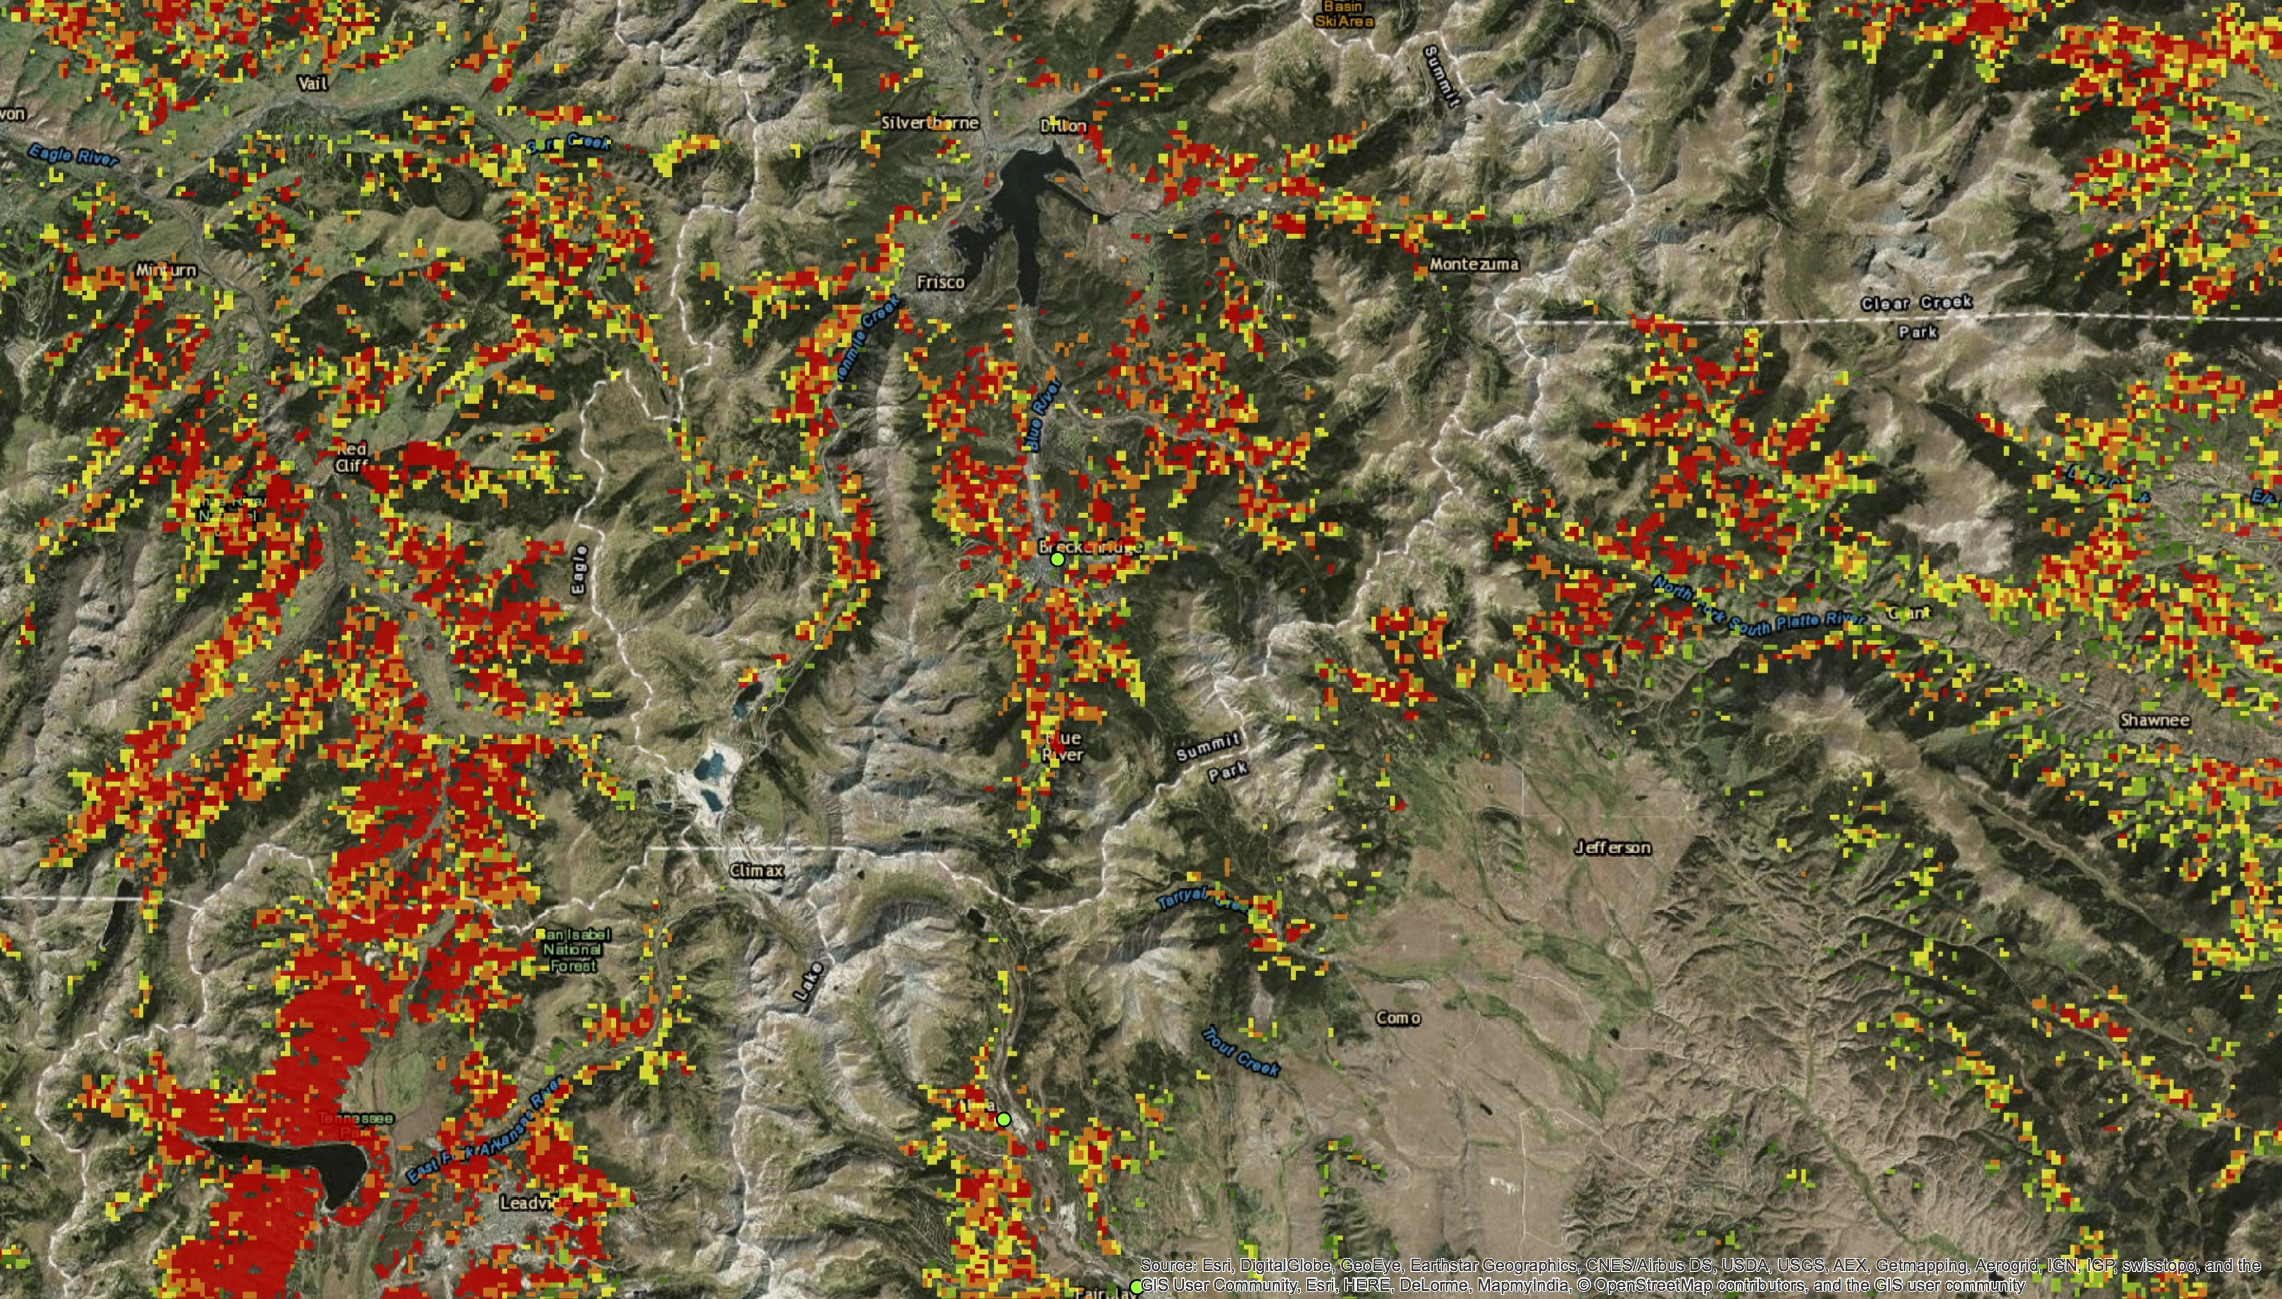 Trees killed by bark beetle in CO